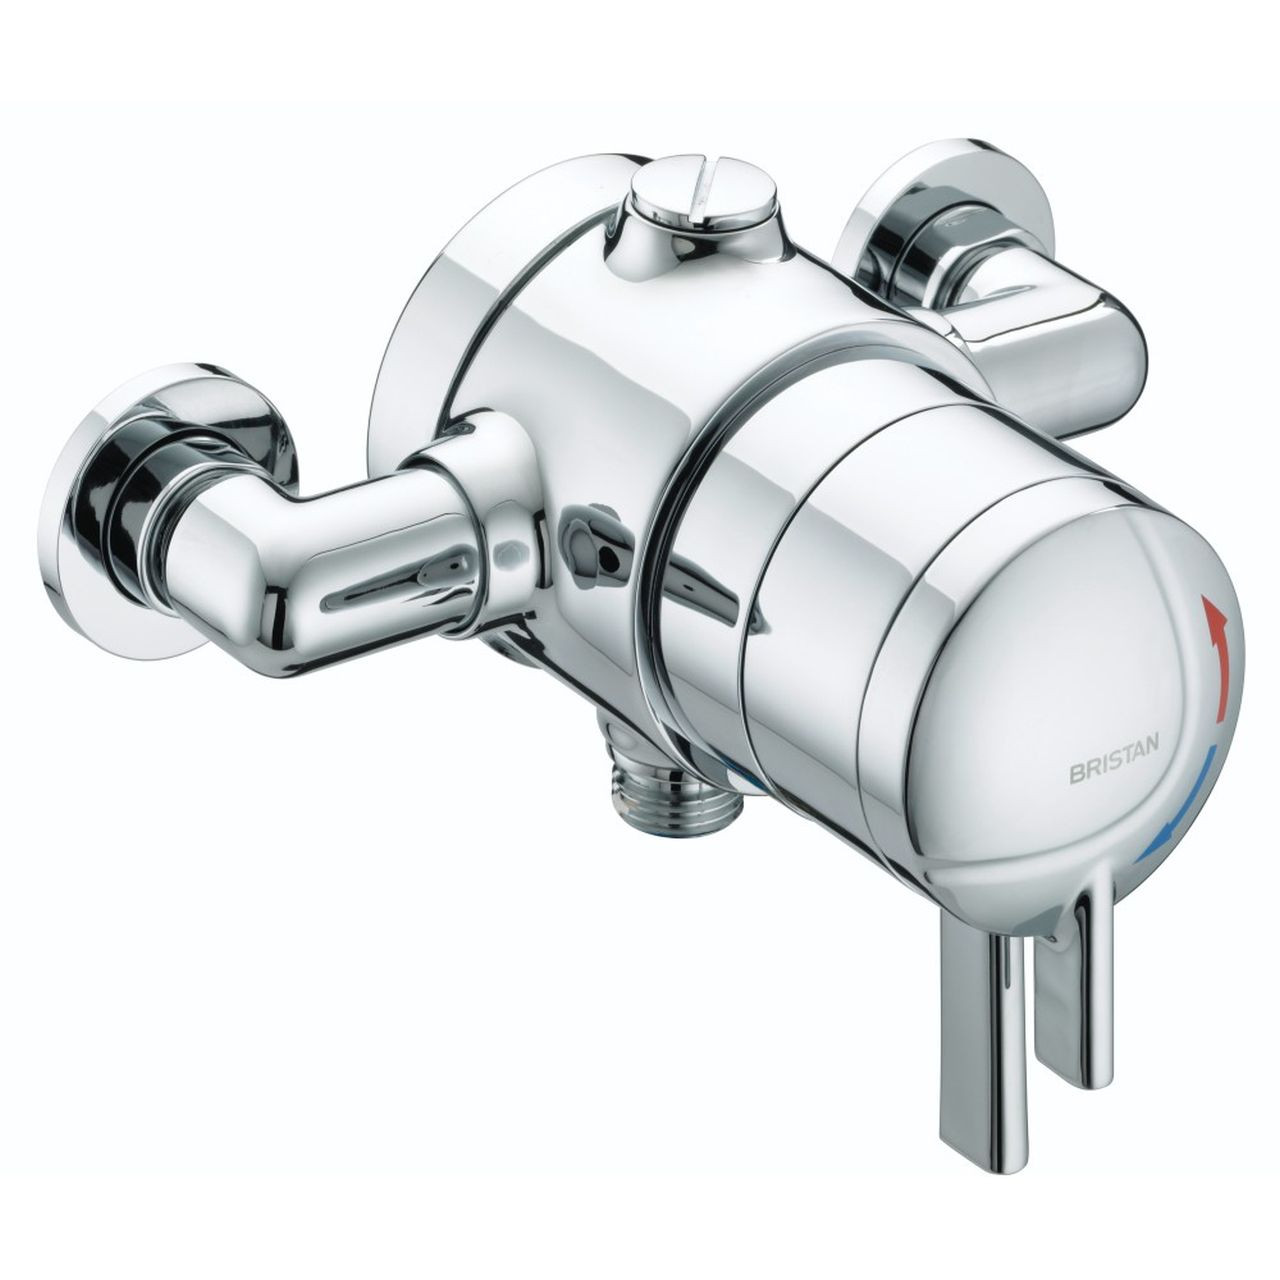 Bristan Stratus Chrome Thermostatic Exposed Shower Valve with Lever Handle - STR-TS1875-EDC-C